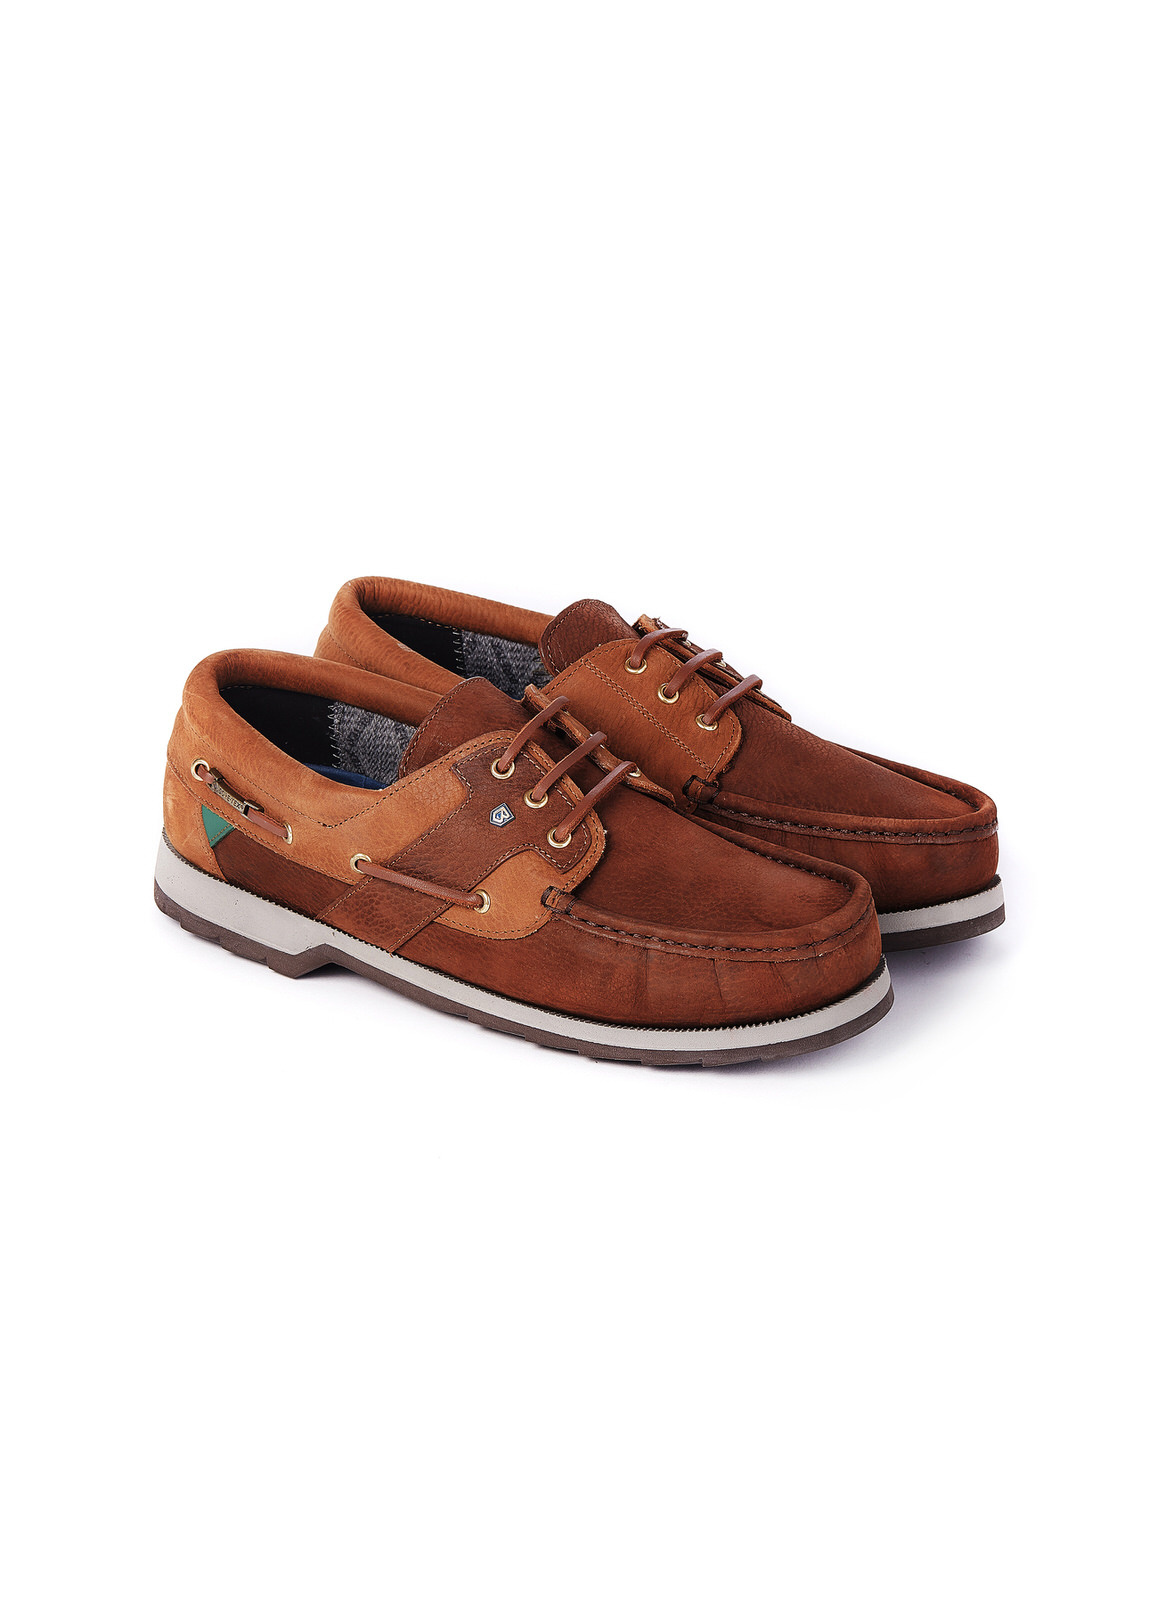 Clipper_Deck_Shoe_Brown_Image_1